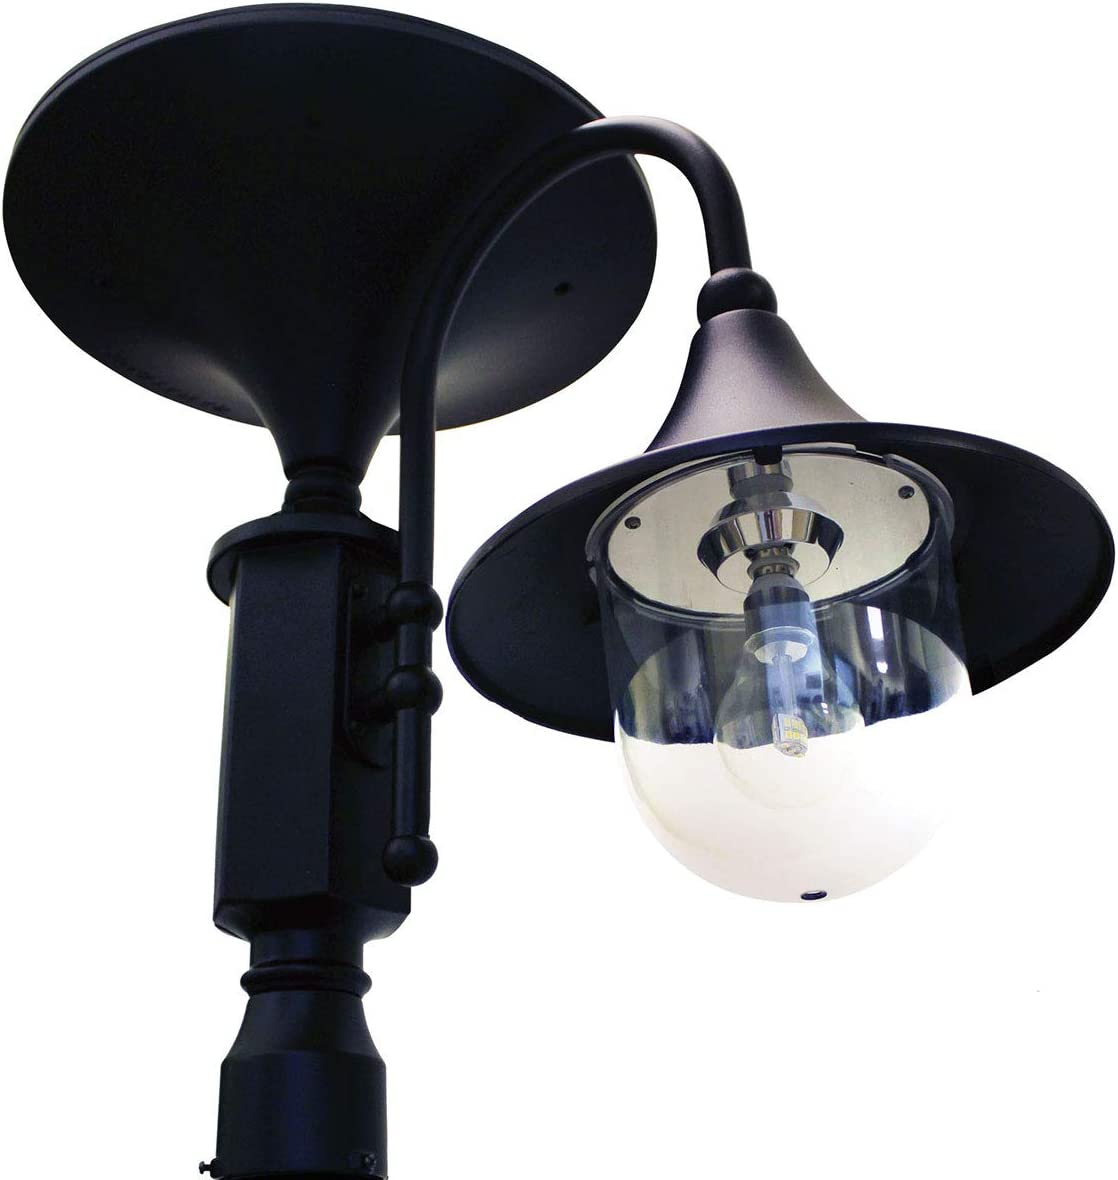 GAMA SONIC Everest II Commercial Solar Lamp, Singe Head, Black GS-129F